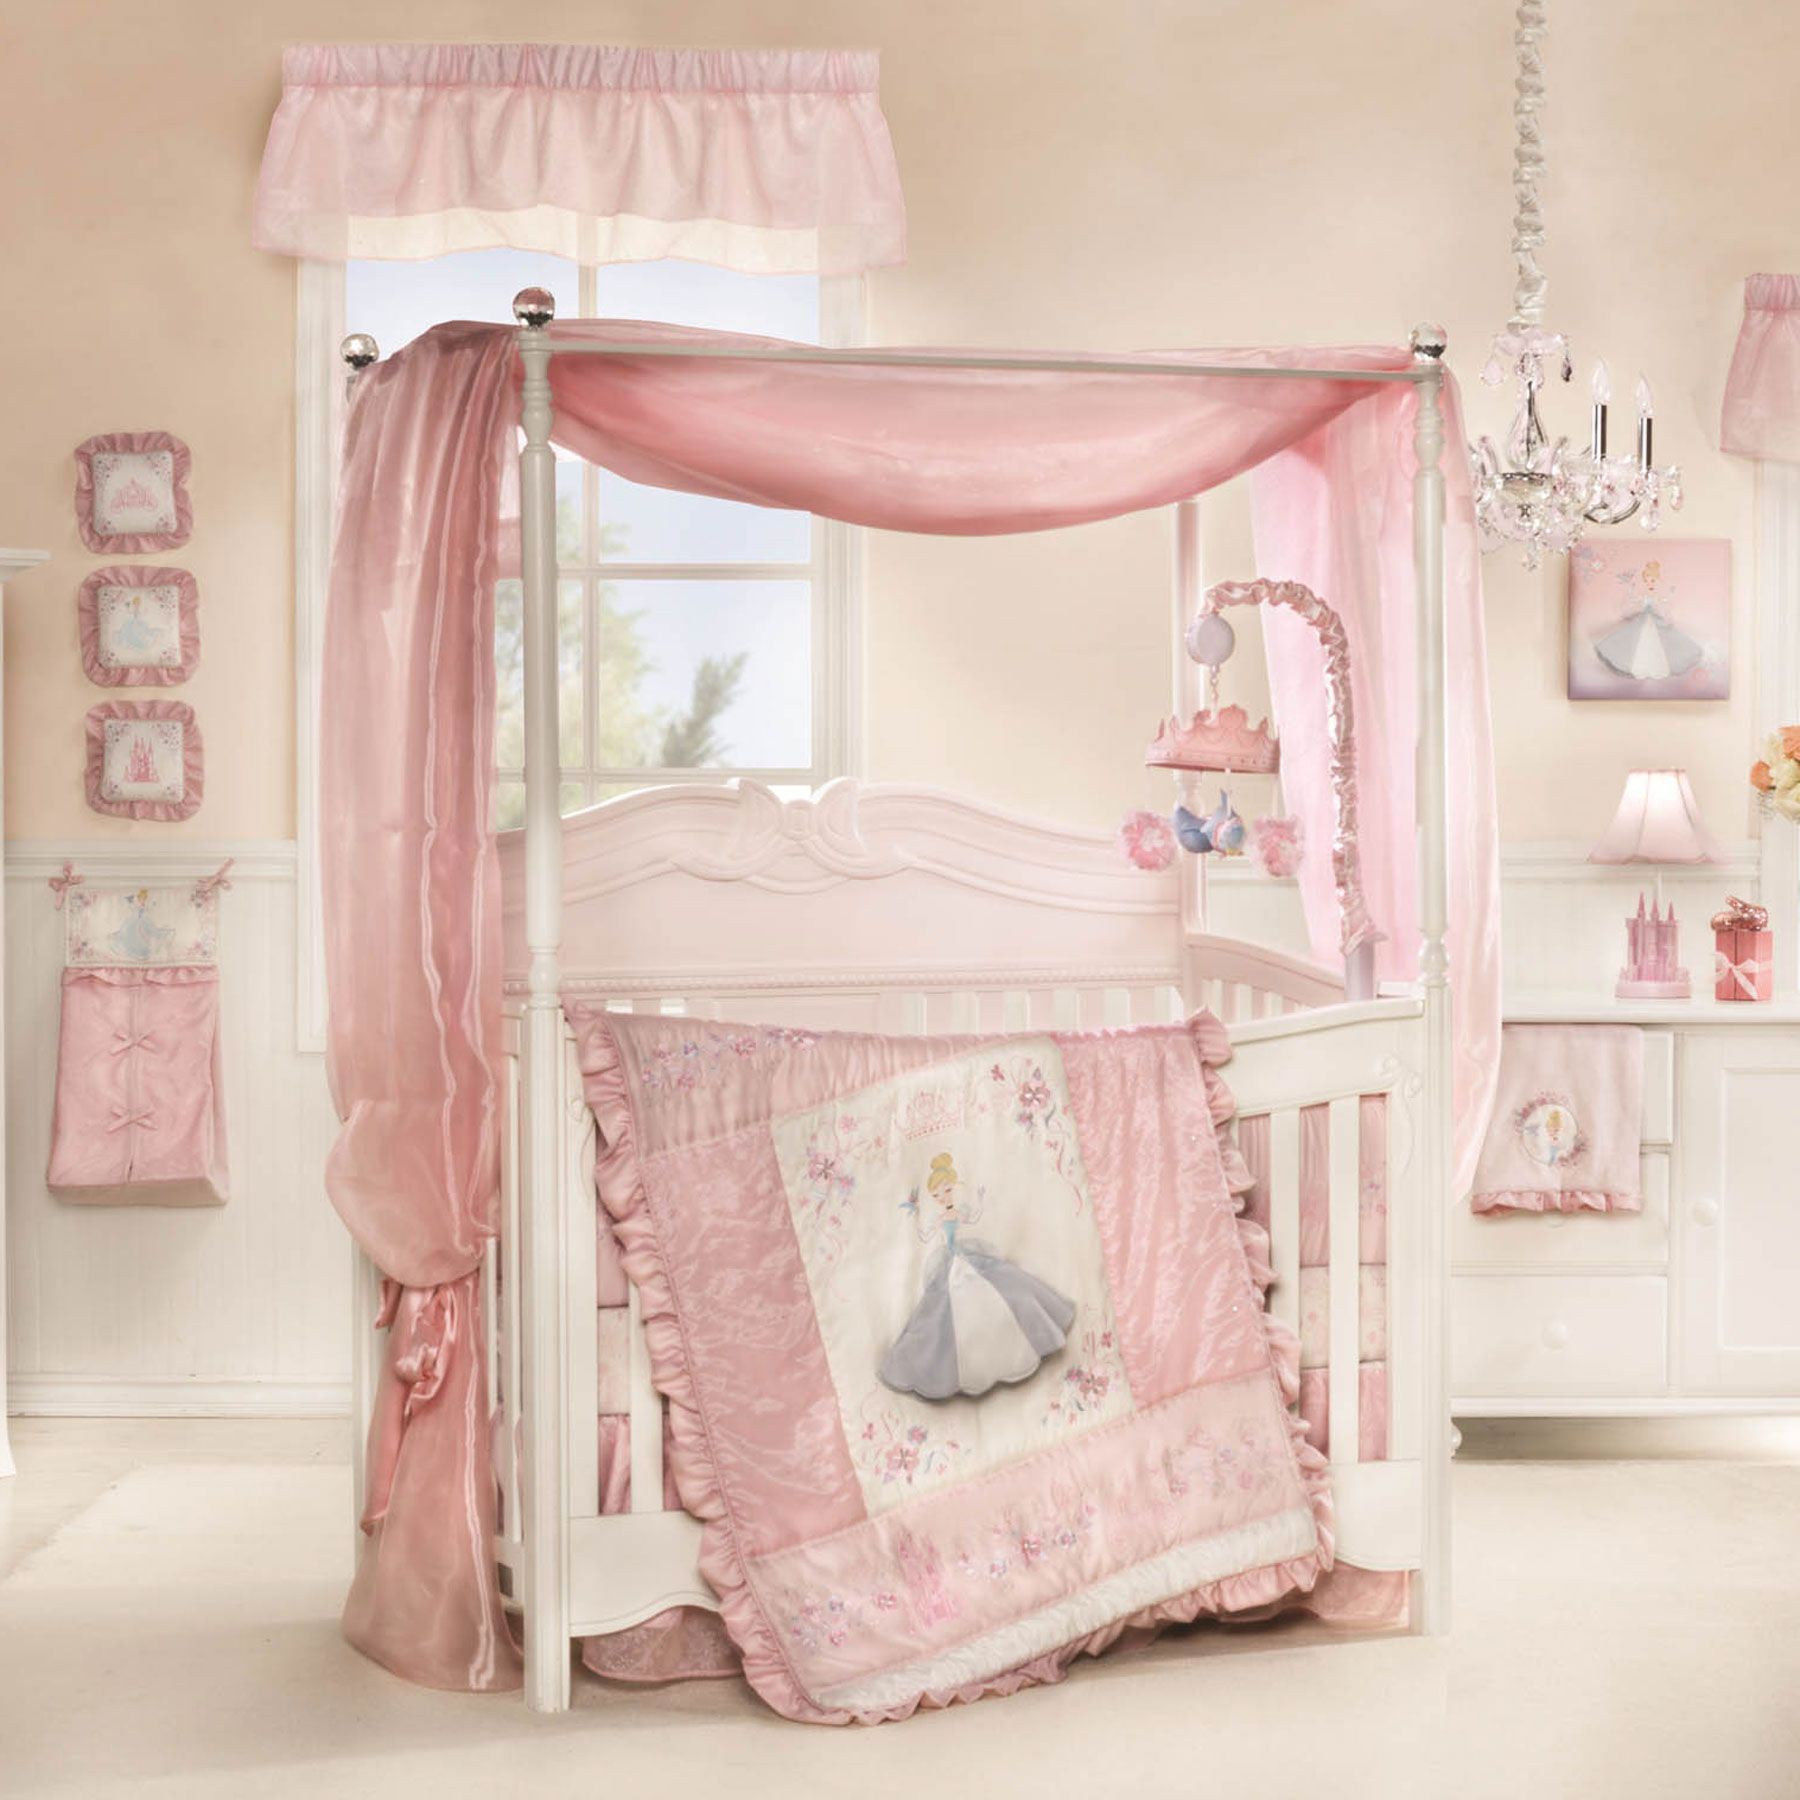 Cinderella Premier 7 Piece Crib Bedding Set Featuring Disney Princess